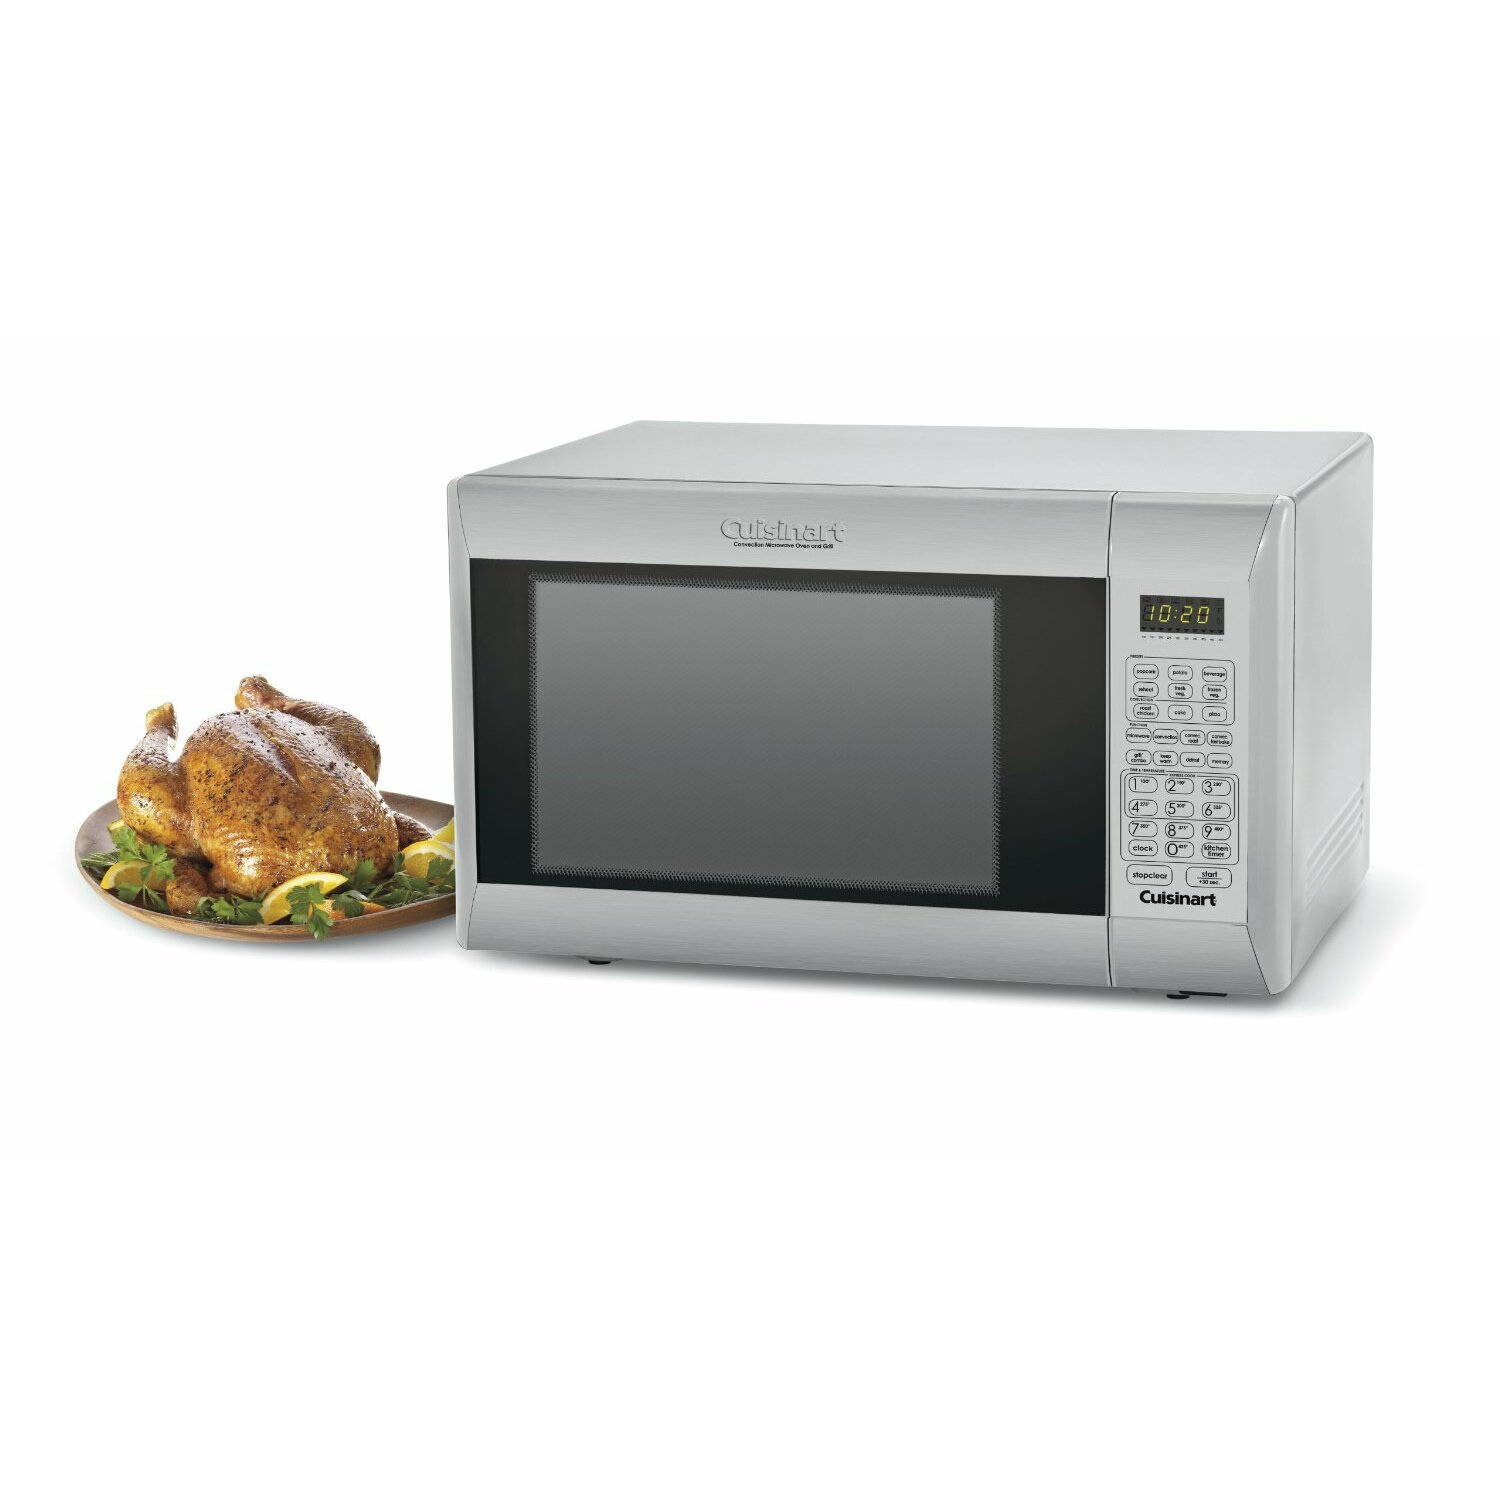 Countertop Microwave Reviews : Cuisinart 21.2